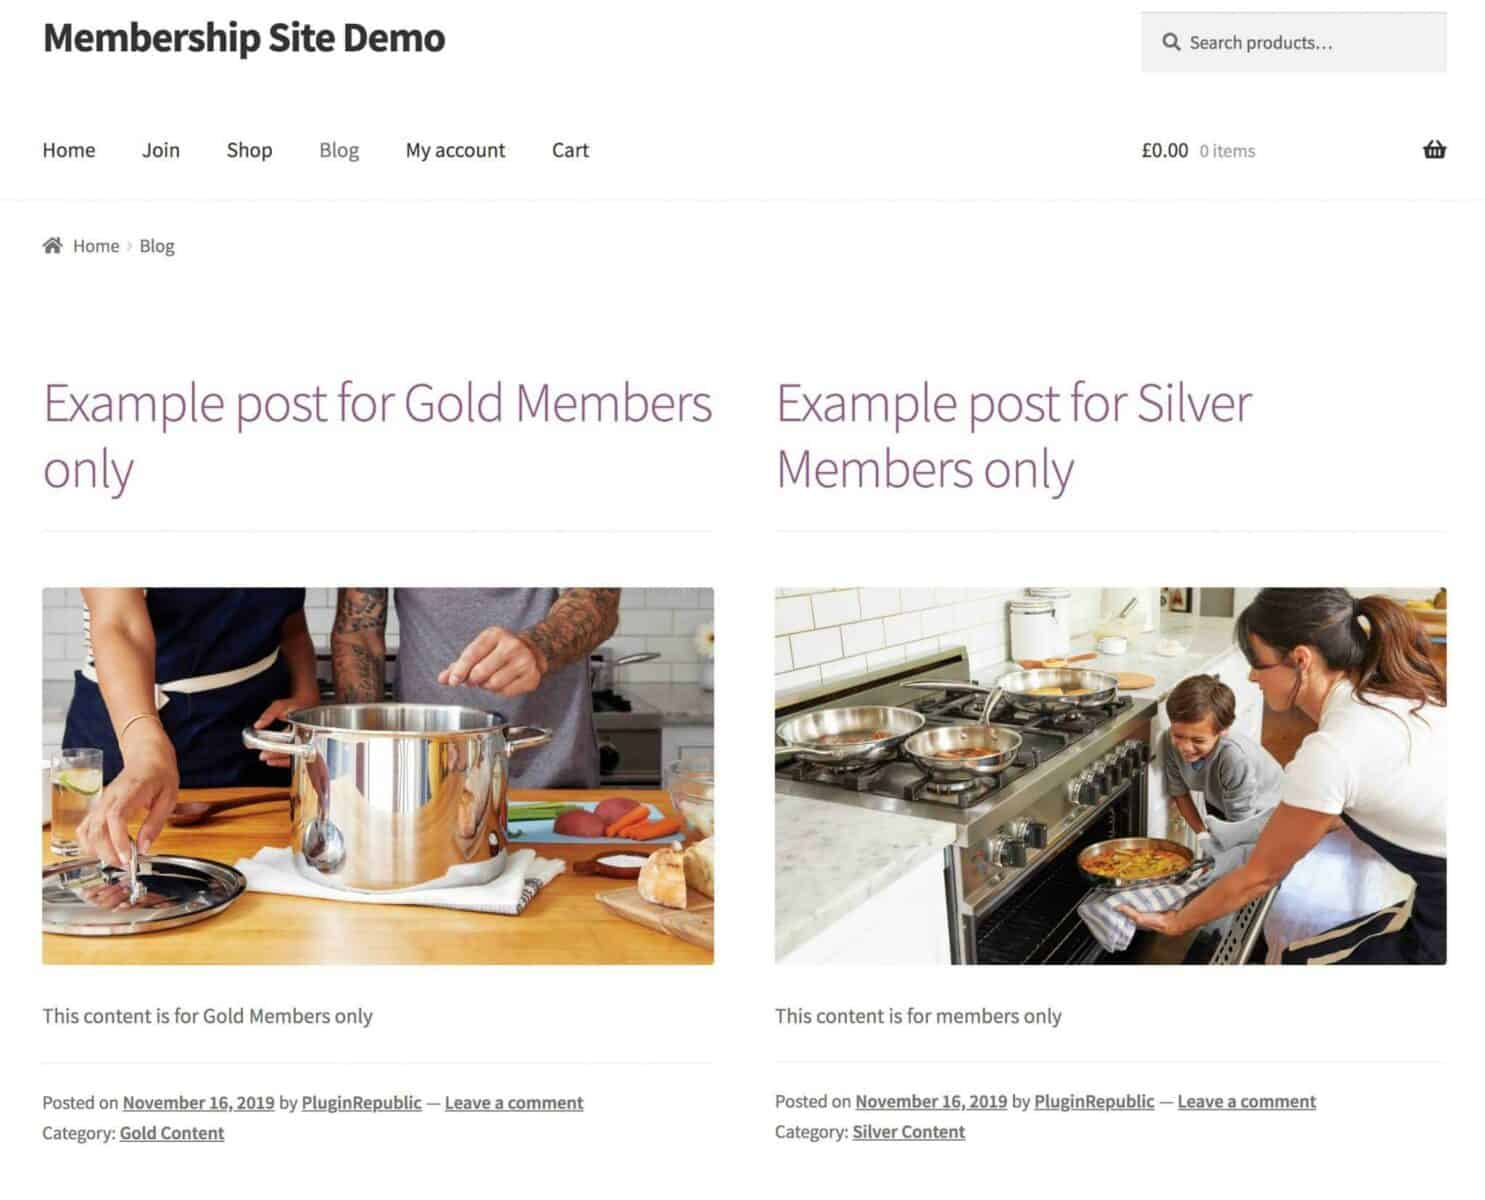 WooCommerce membership site protected blog posts